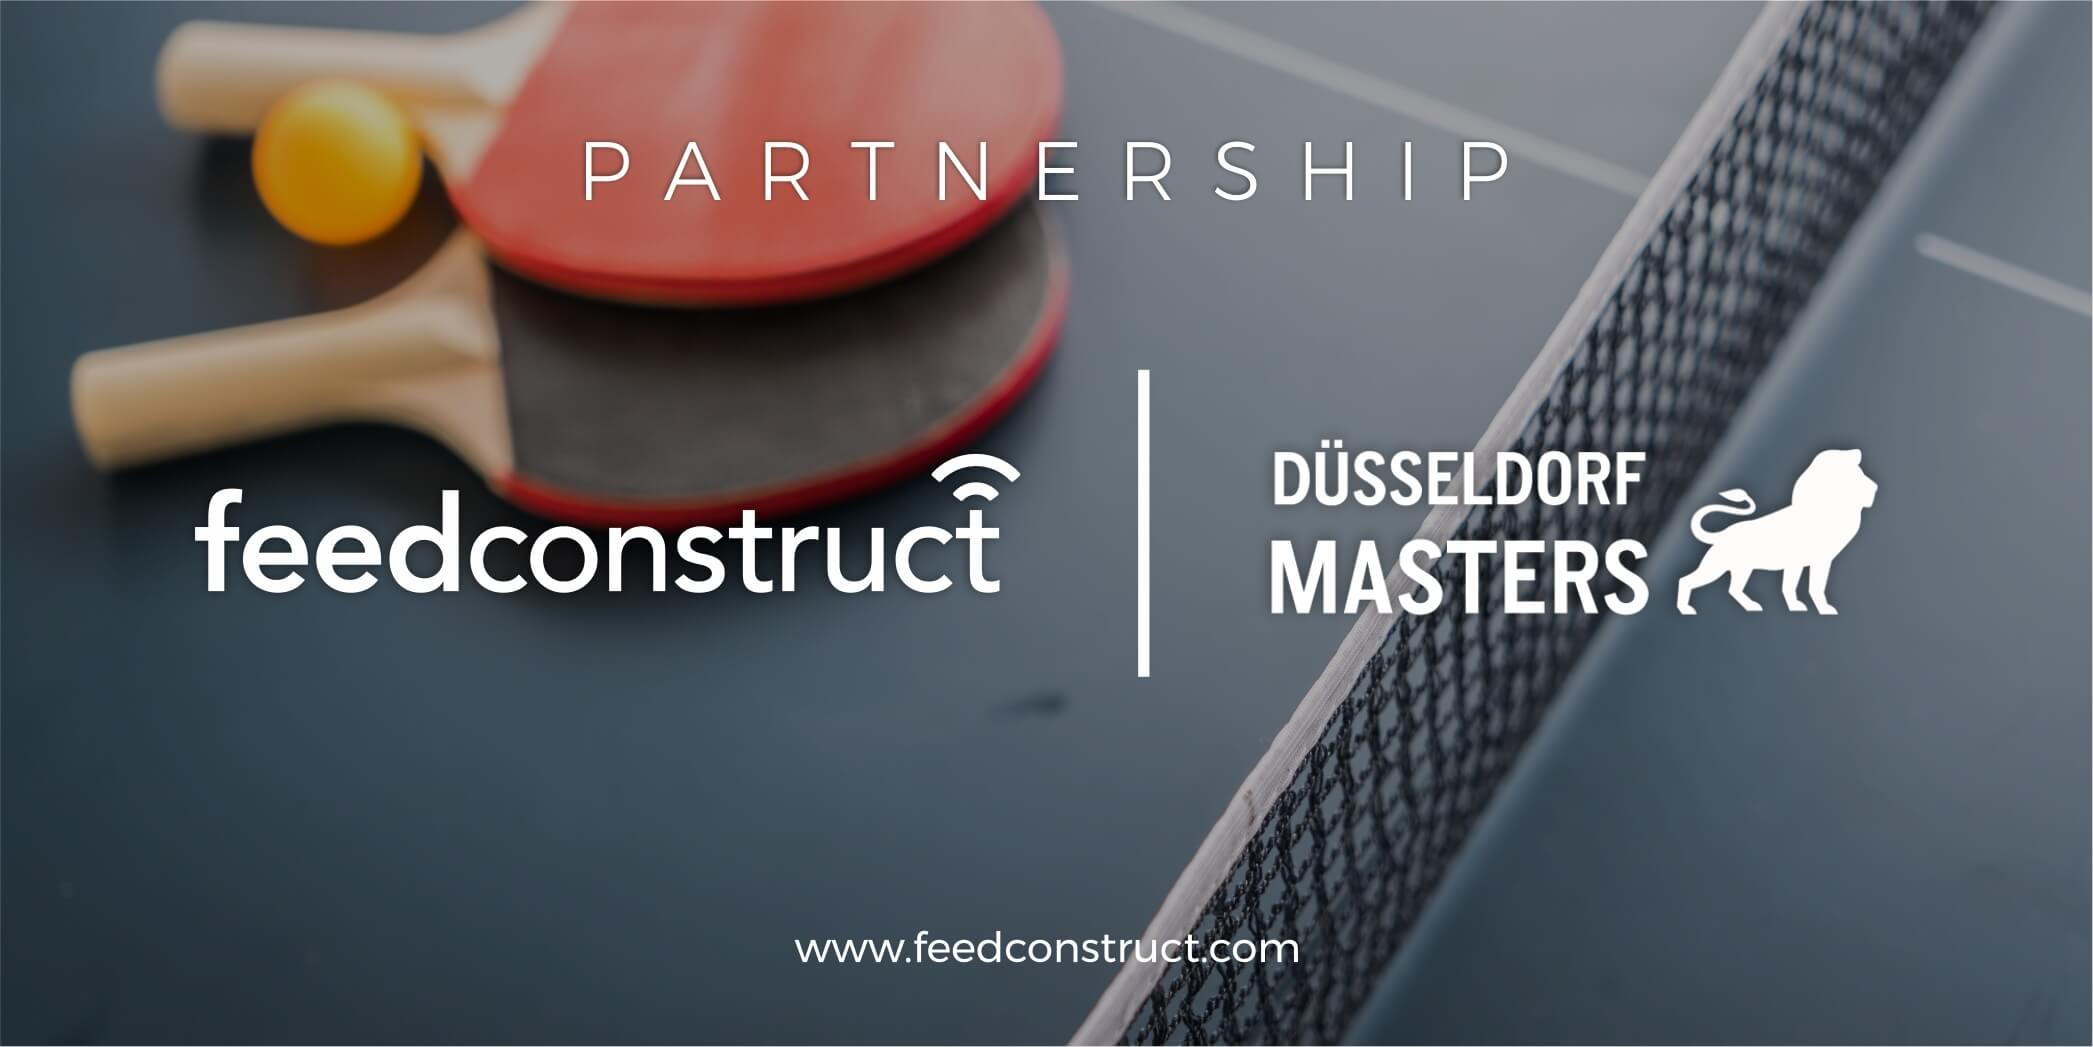 Düsseldorf Masters signs FeedConstruct as exclusive data provider